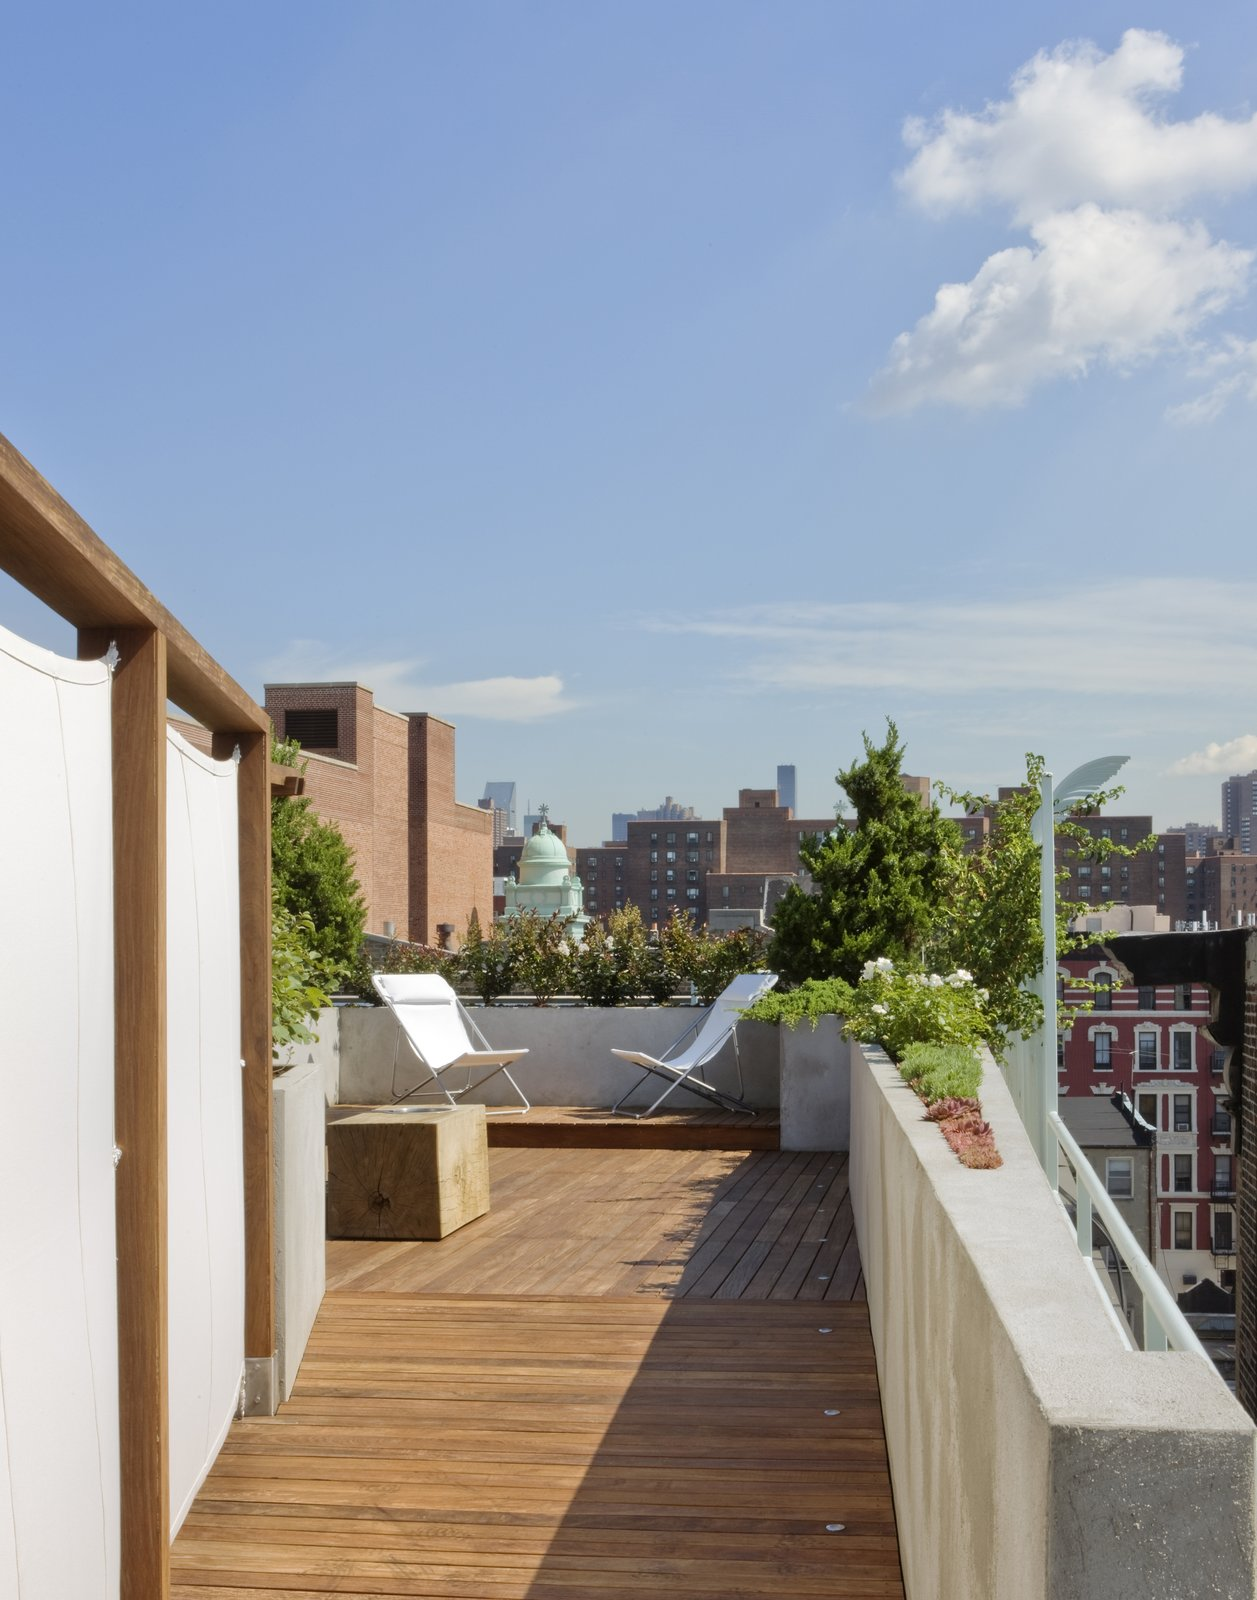 A view from the connecting ramp towards the upper level of the roof deck.   A custom Portland cement stucco planter wall tapers in a wedge shape continuing the line of the building parapet.  Military surplus canvas screens are on the right.  These are removable allowing access to existing service areas on the roof.  East Village Roof Garden